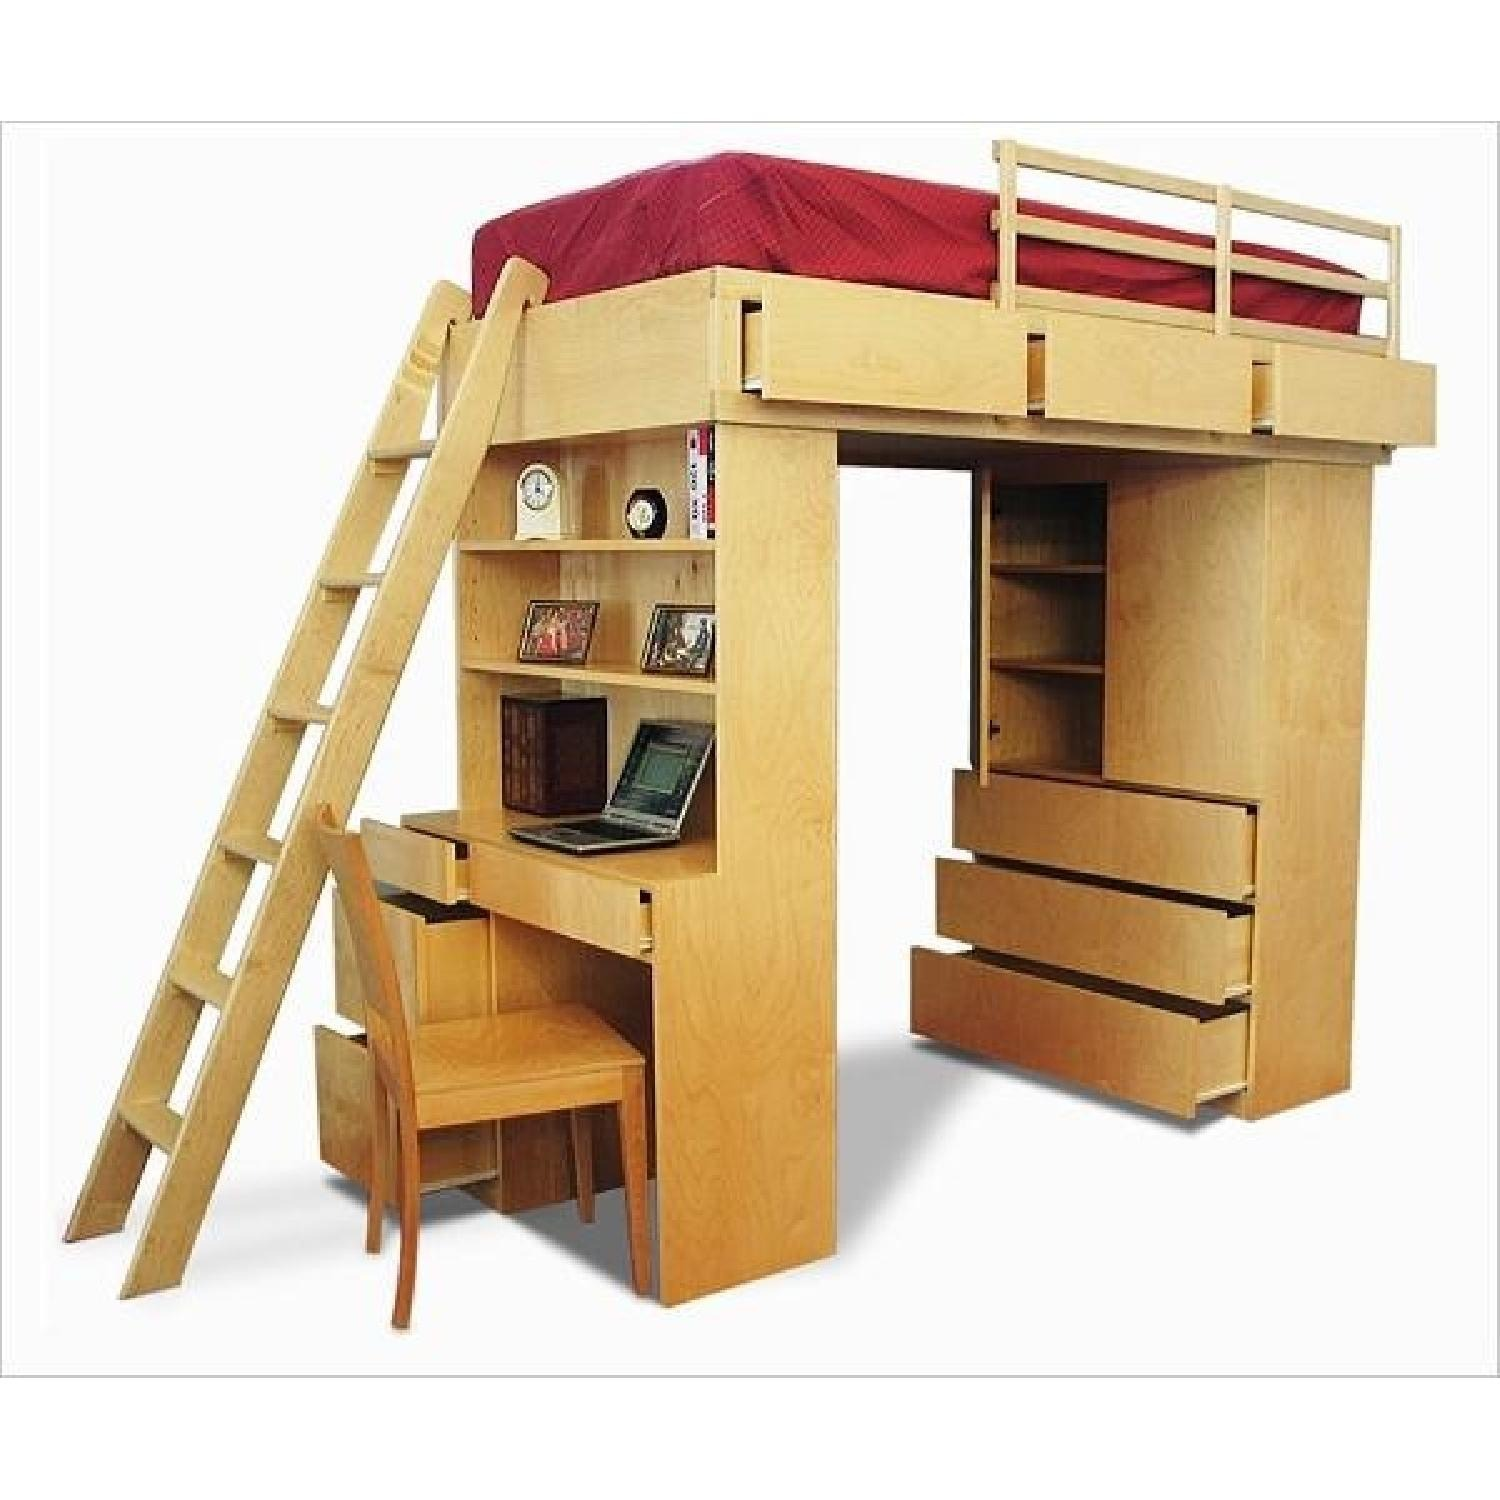 Gothic Cabinet Craft Loft Bed with Desk and Dresser - image-1